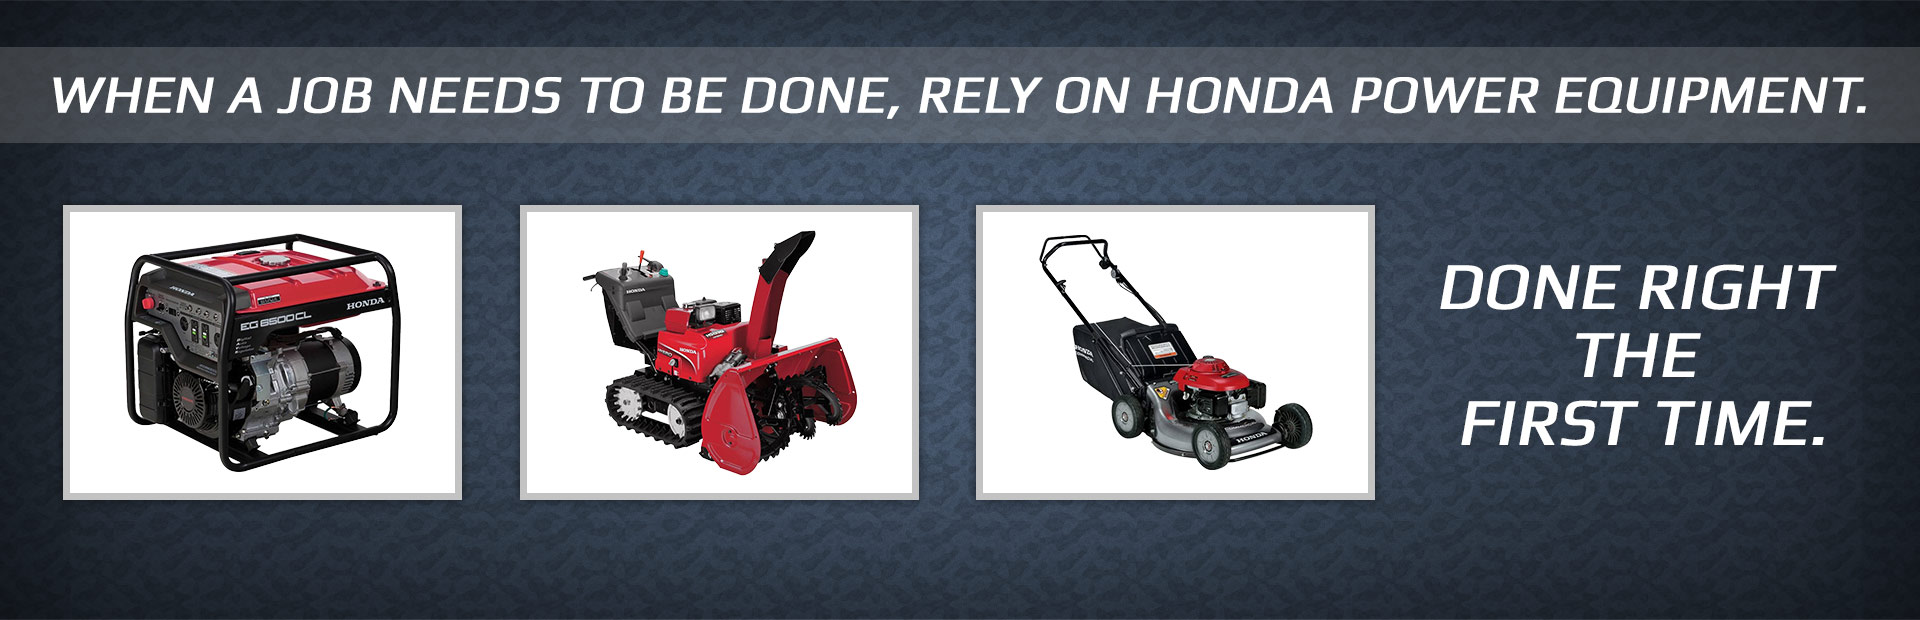 When a job needs to be done, rely on Honda Power Equipment.